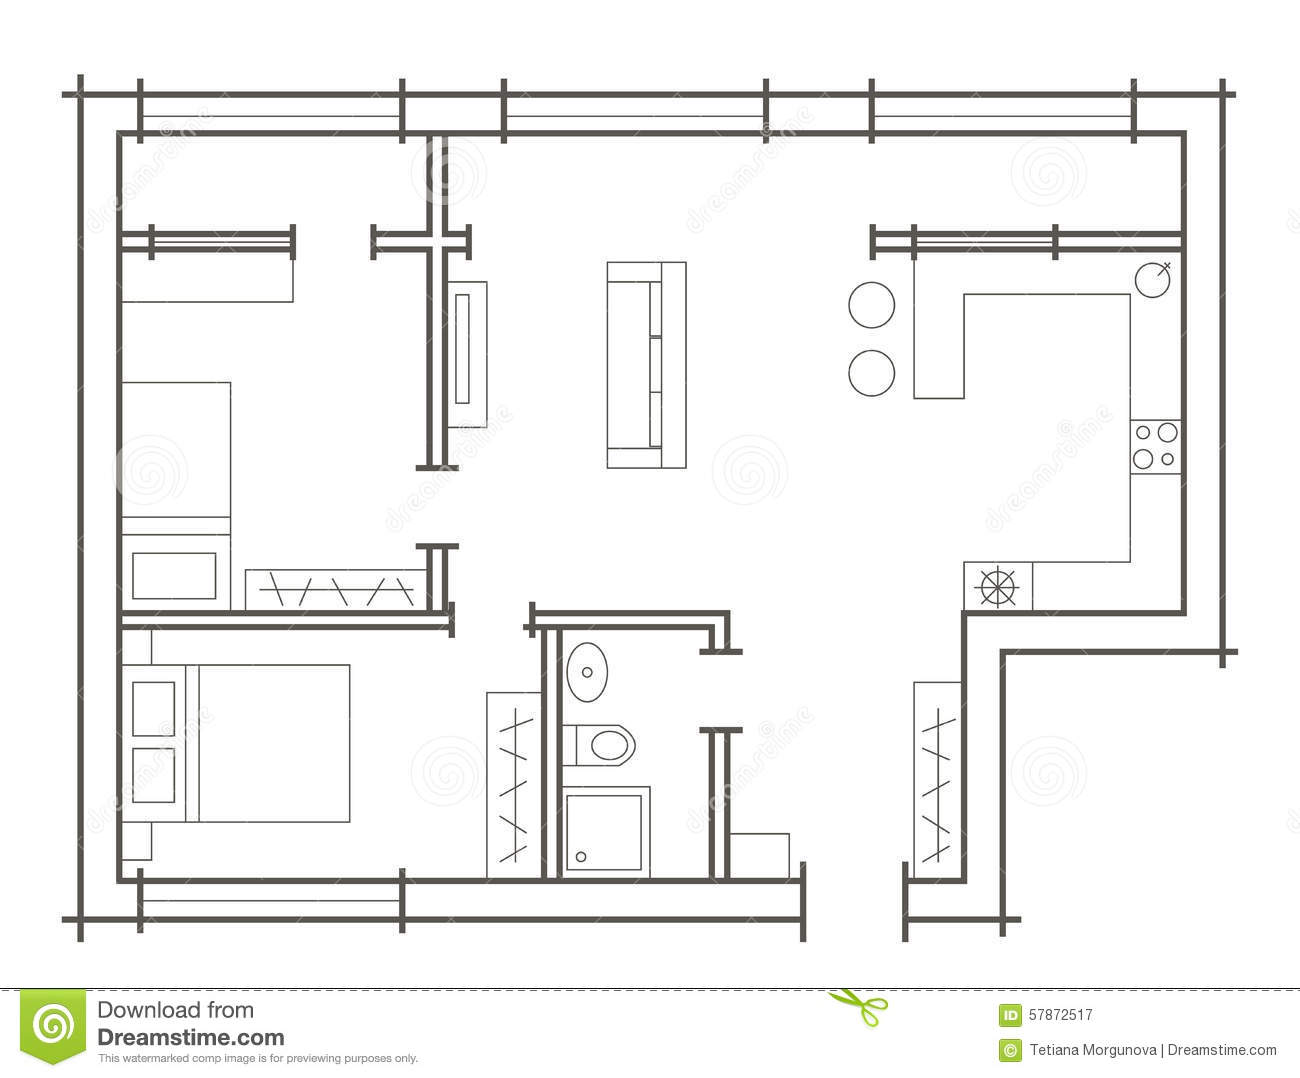 Superbe Plan Sketch Of Two Bedroom Apartment Stock Vector Image 57872517 Architectural  Plan Of Two Bedroom Flat